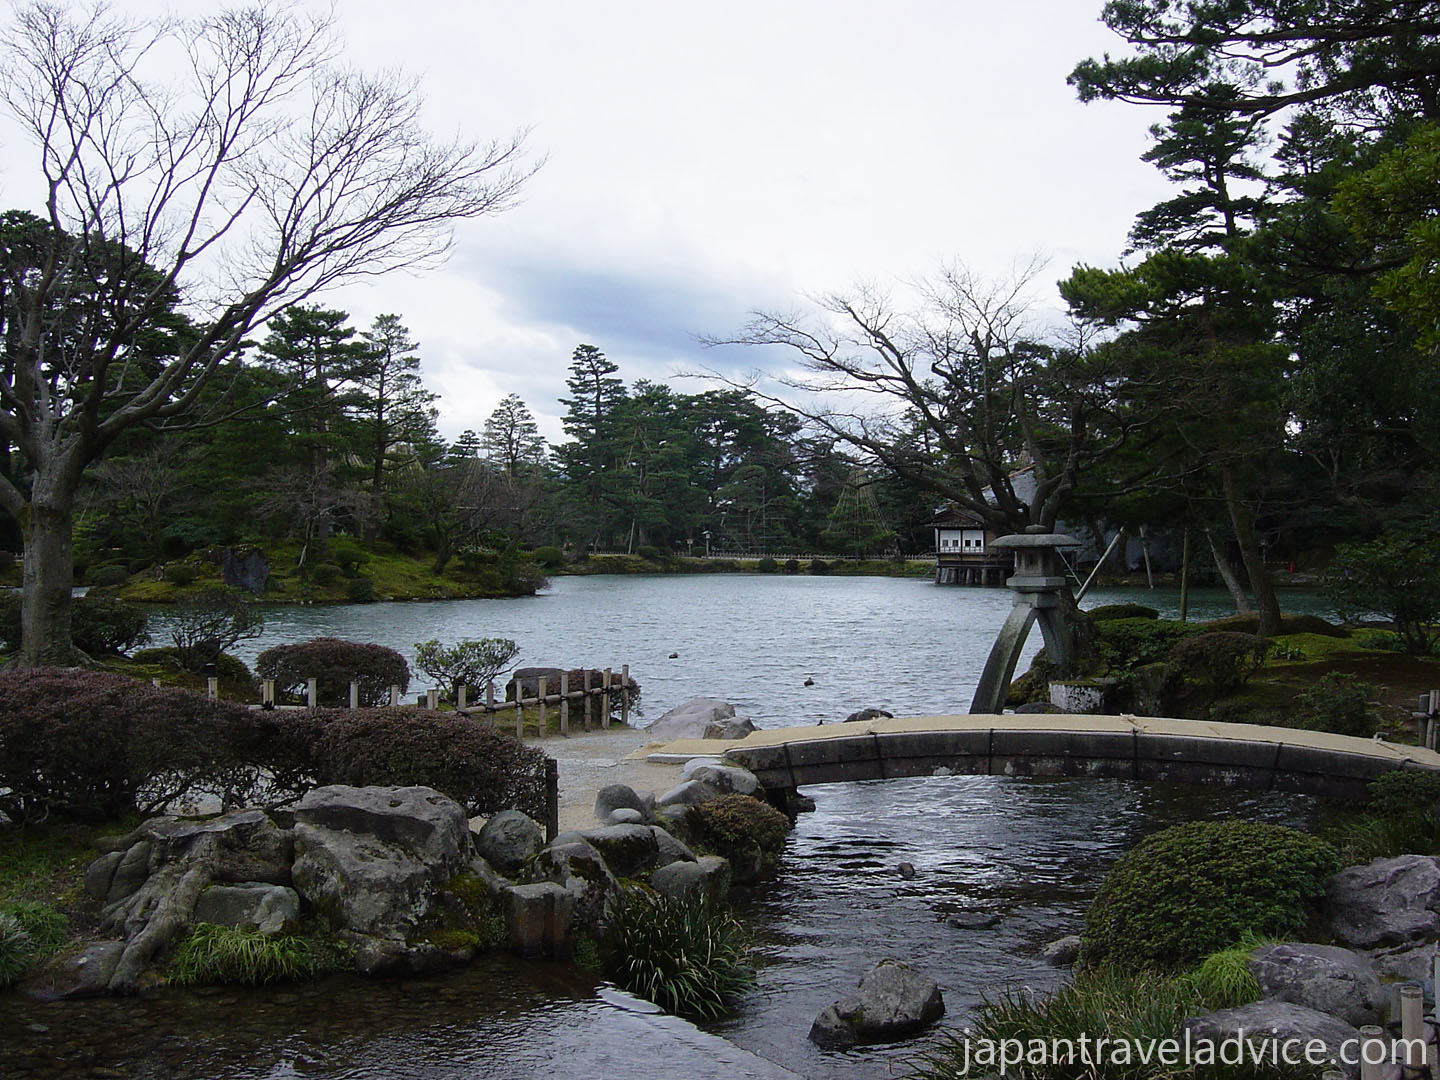 Kasumiga-ike Pond